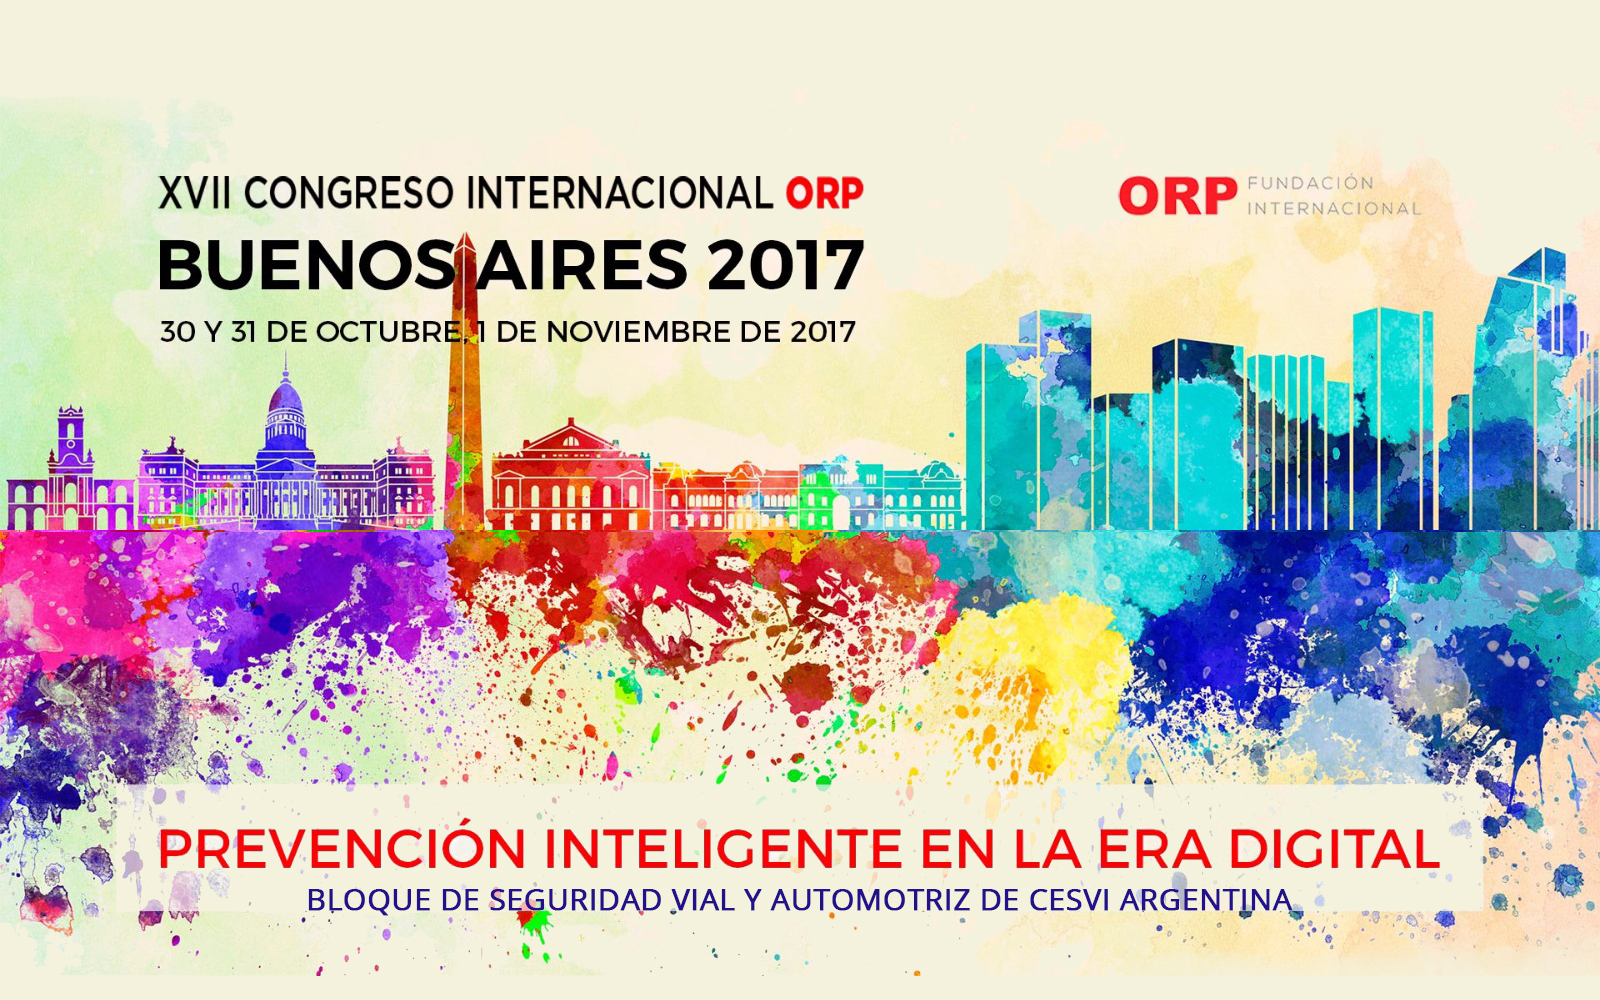 ORPconferenceBuenos Aires 2017